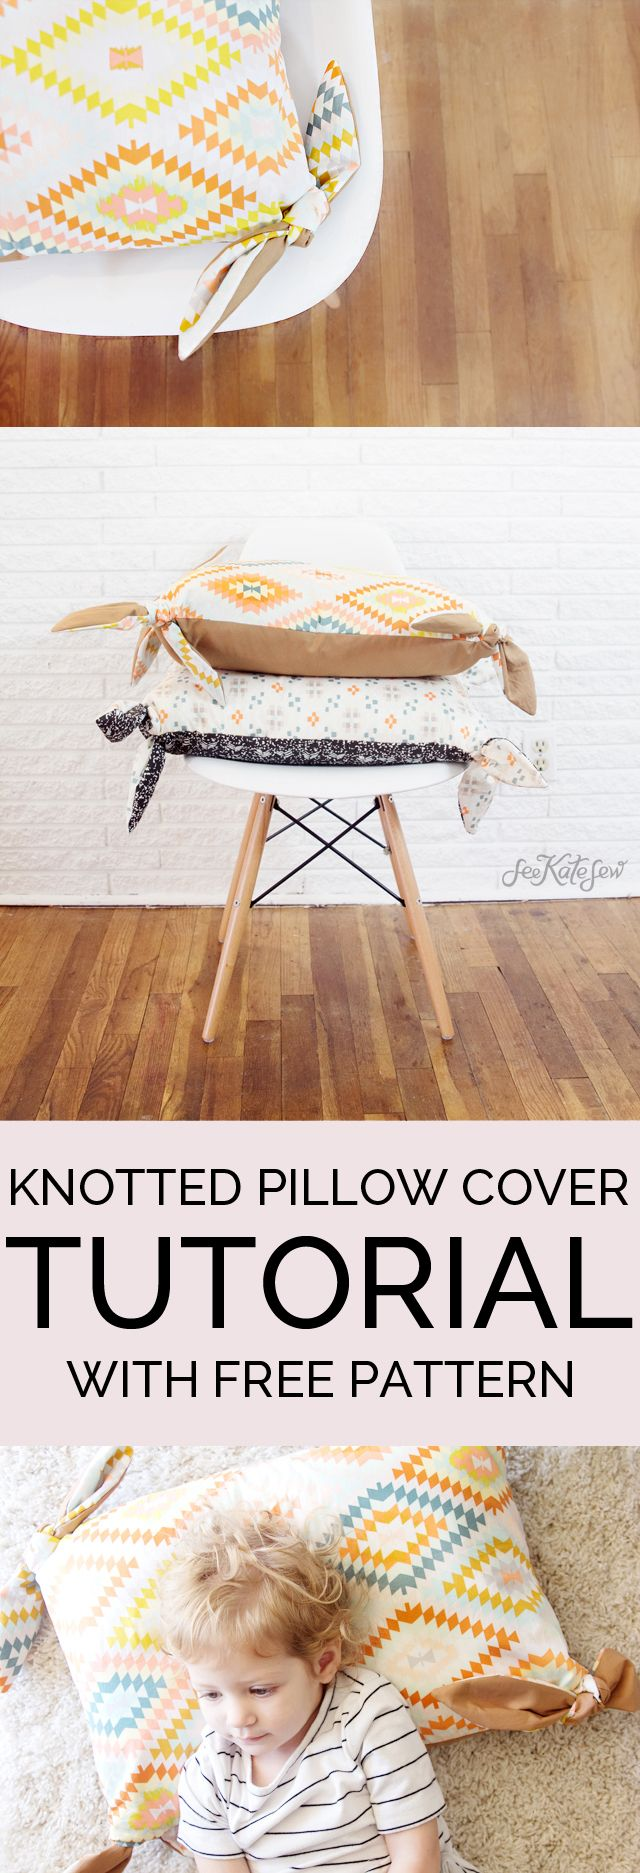 Two Tone Knotted Pillow Cover Tutorial With Wanderer Fabric. Sewing Pillows Diy PillowsPillow IdeasTutorial ...